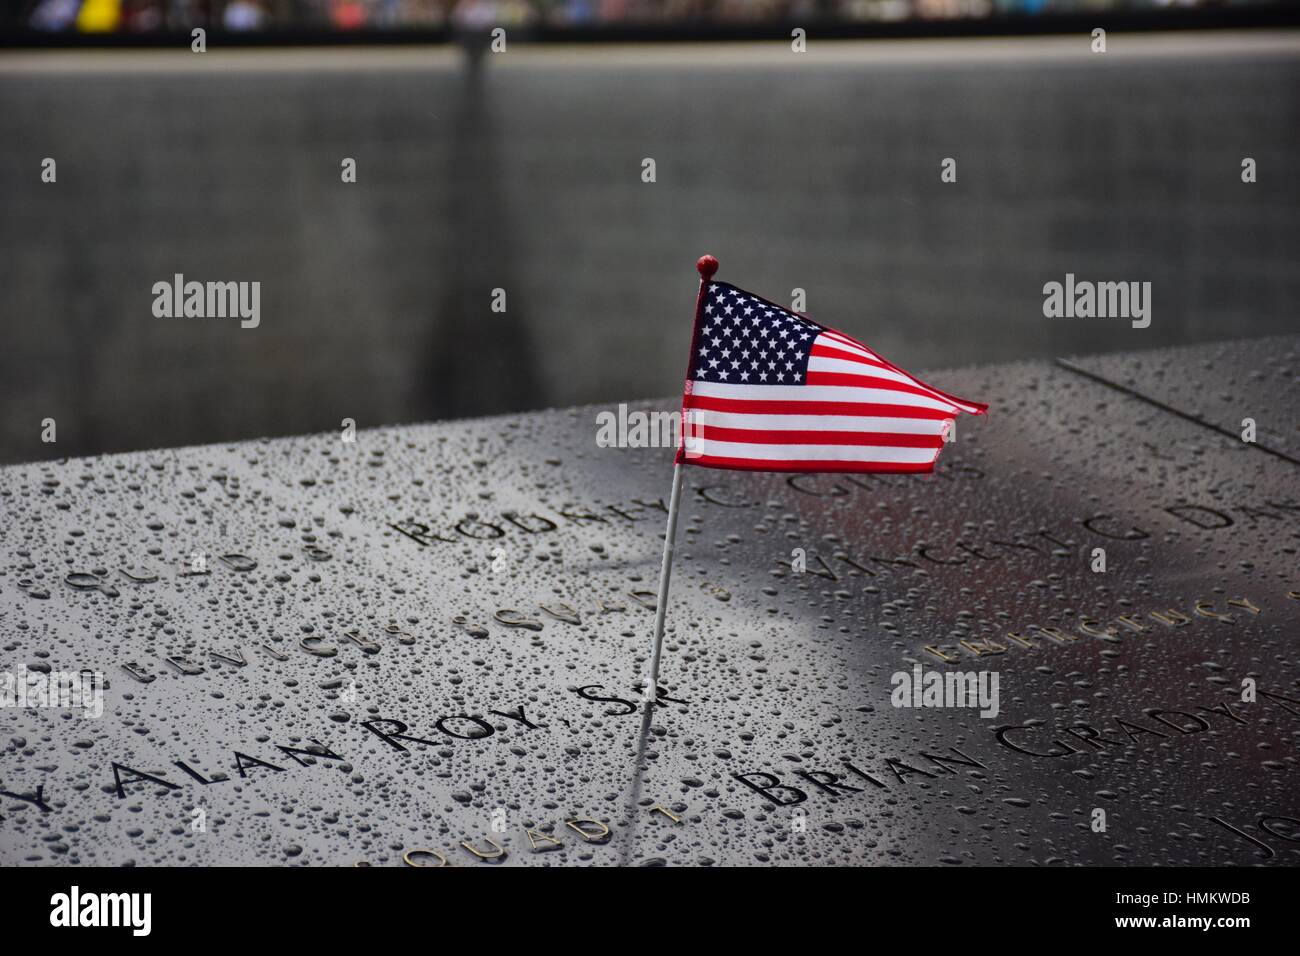 Memorial at Ground Zero Manhattan for September 11 Terrorist Attack with an American Flag Standing near the Names - Stock Image